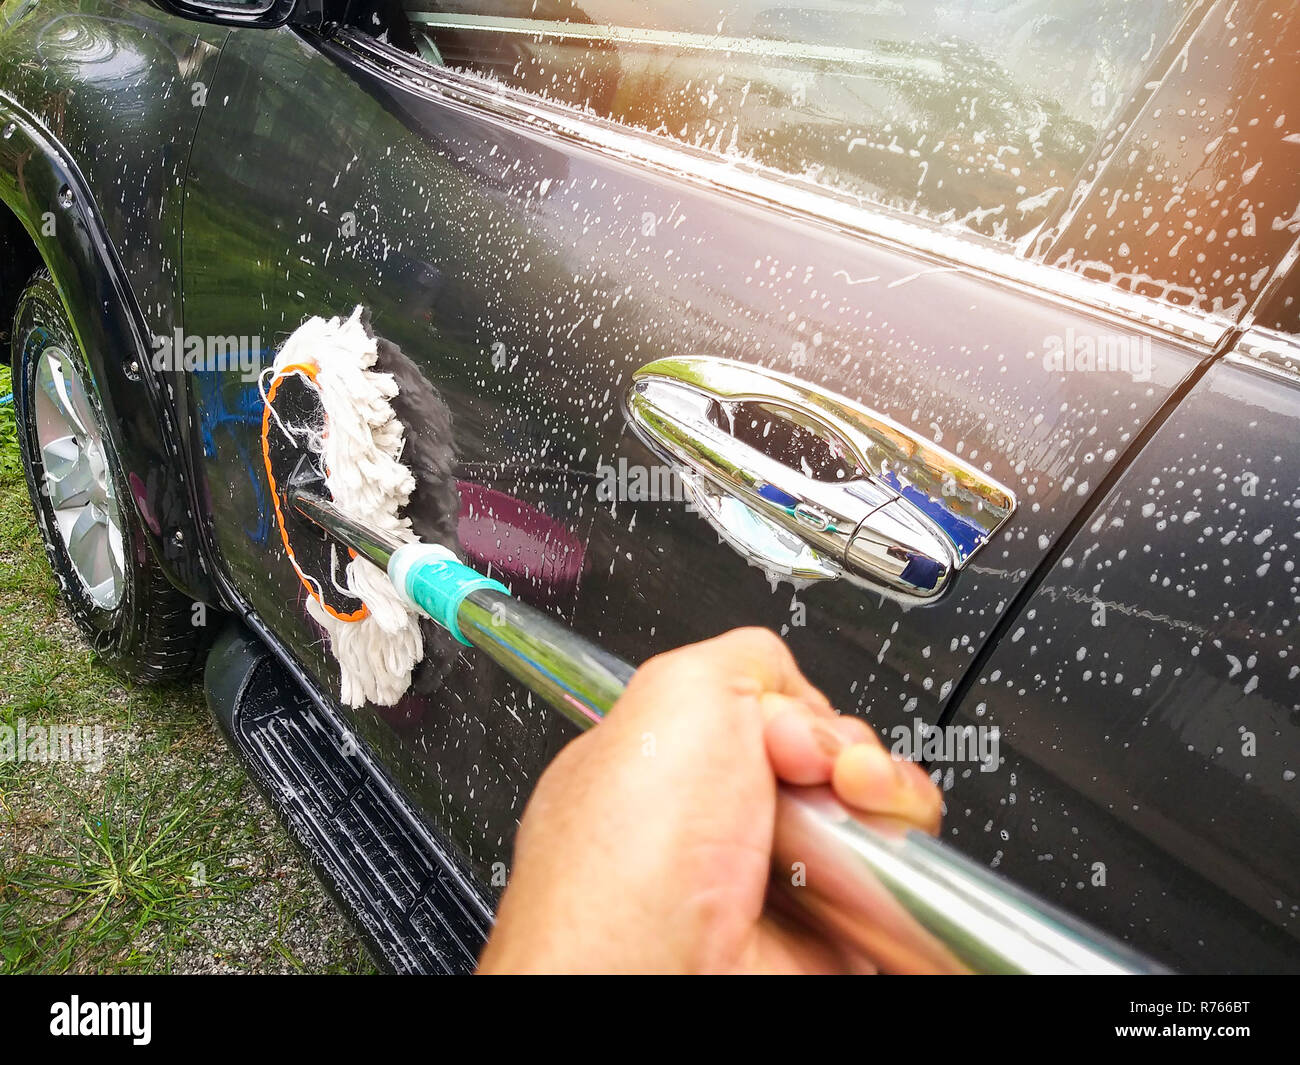 car wash manual / hand worker cleaning washing car with mop